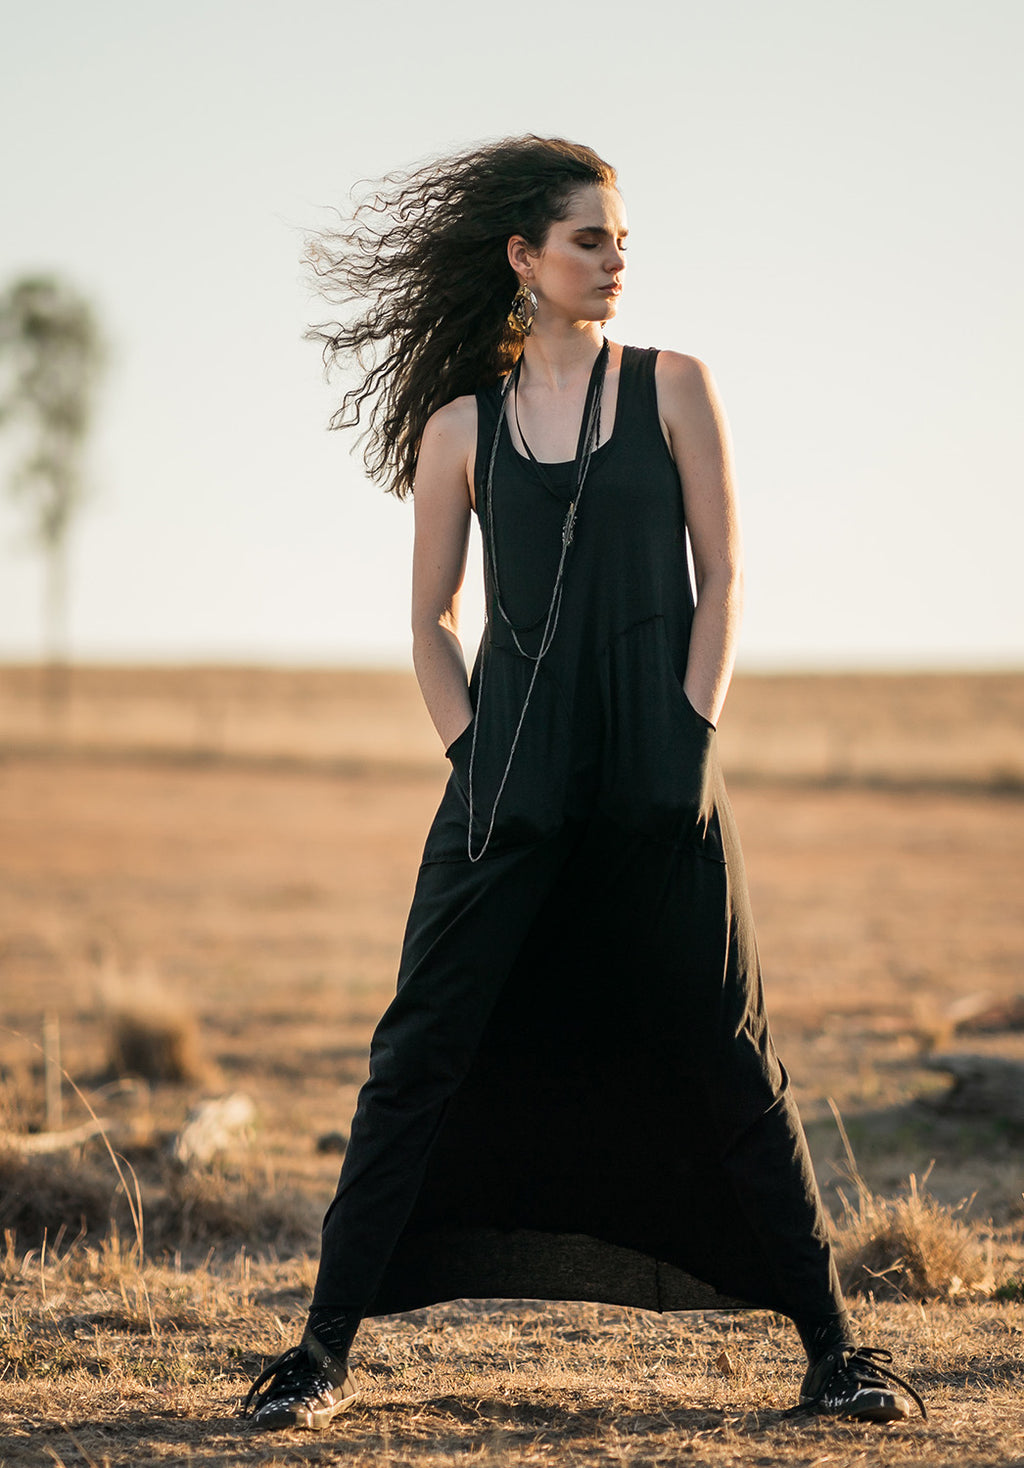 organic fashion, organic cotton, ethical cotton, australian fashion, australian made fashion, australian made clothing, well made clothes, well made fashion